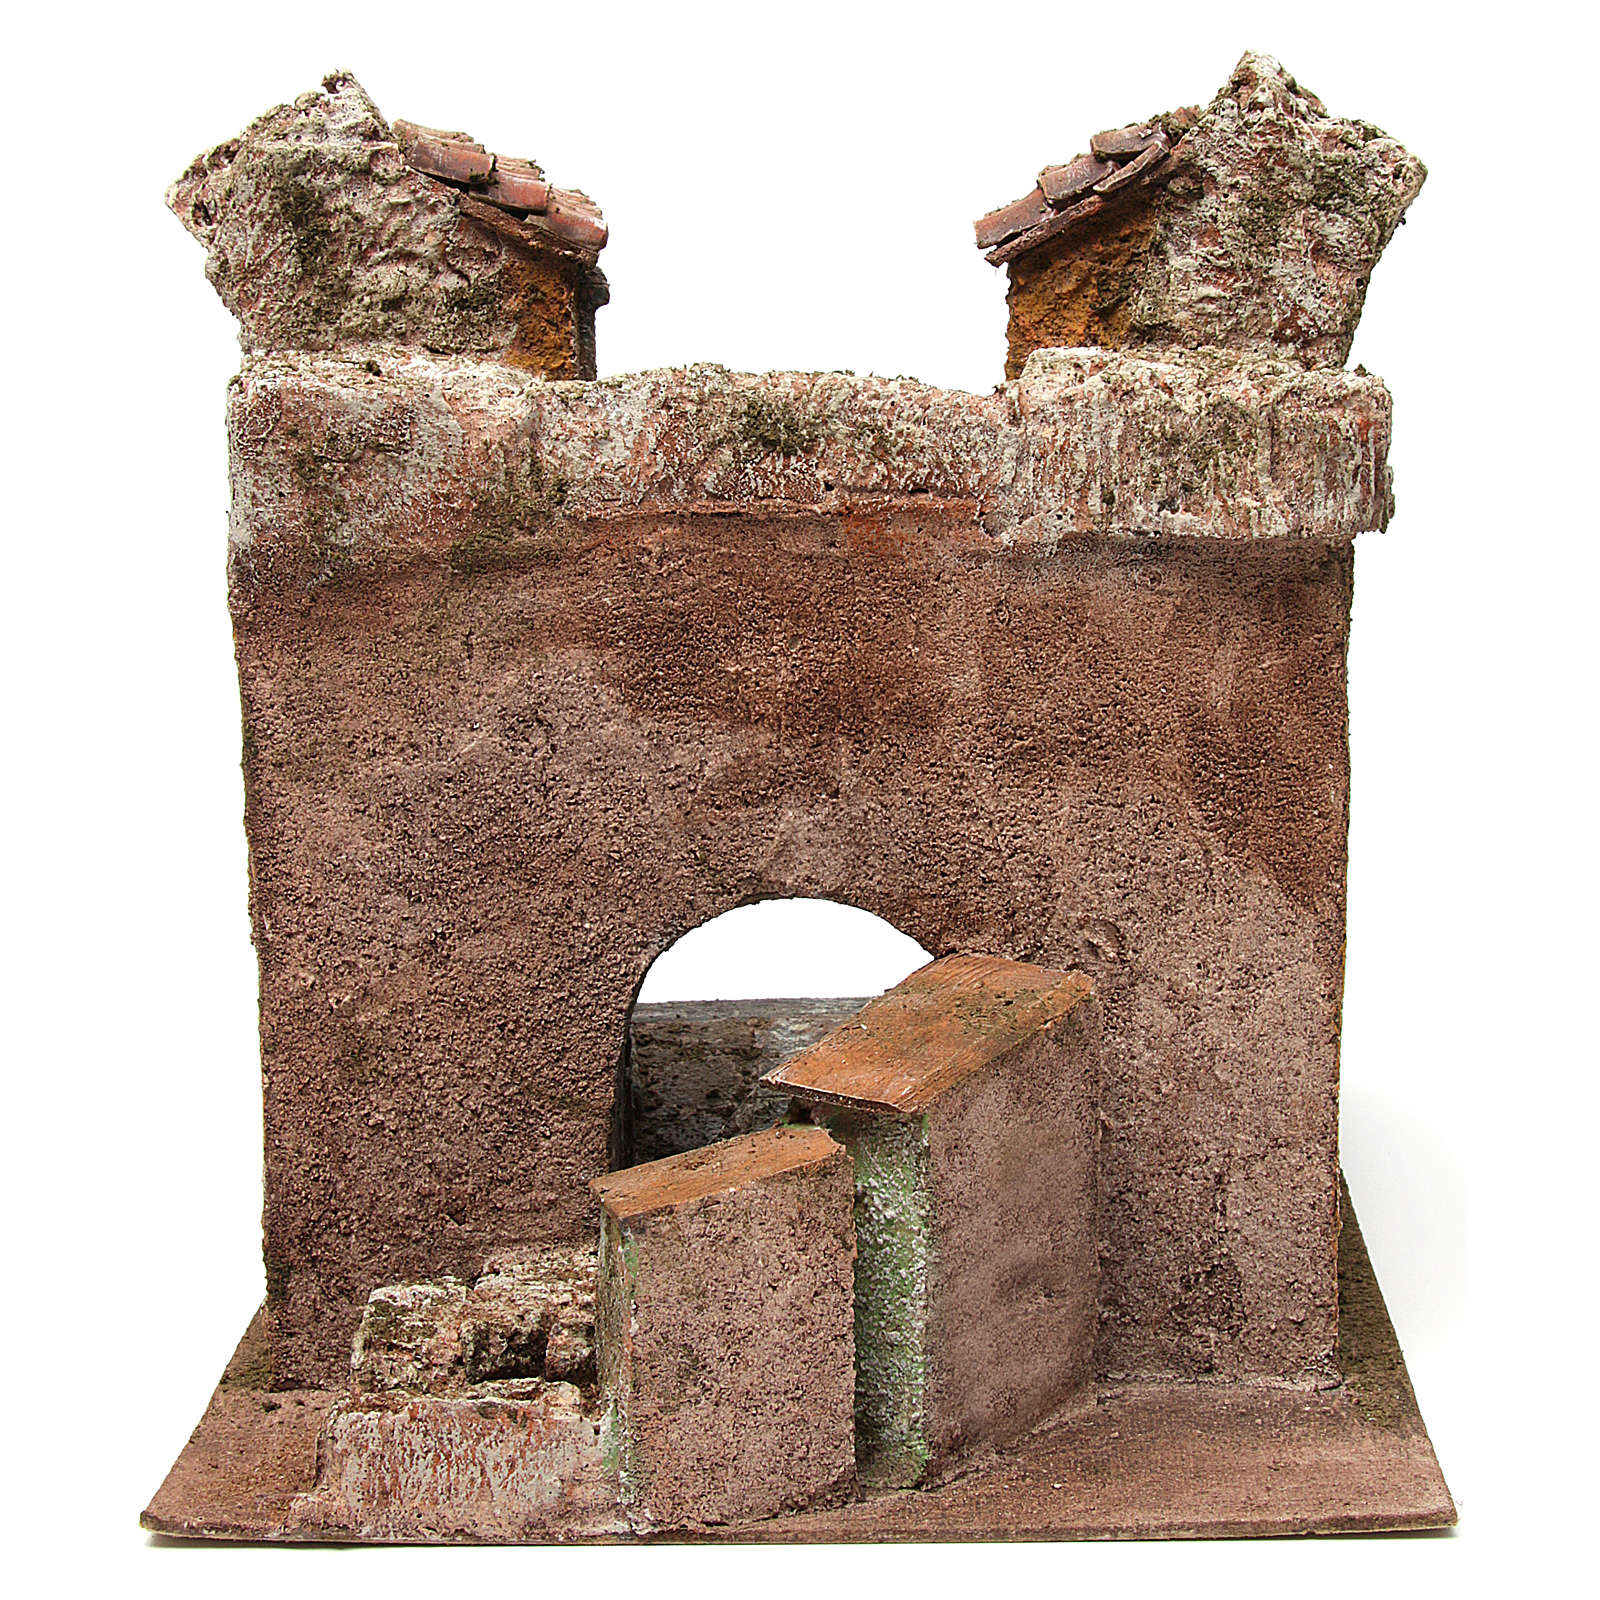 Borough Vicolo Storto for 10 cm nativity 29x29x25 cm 4